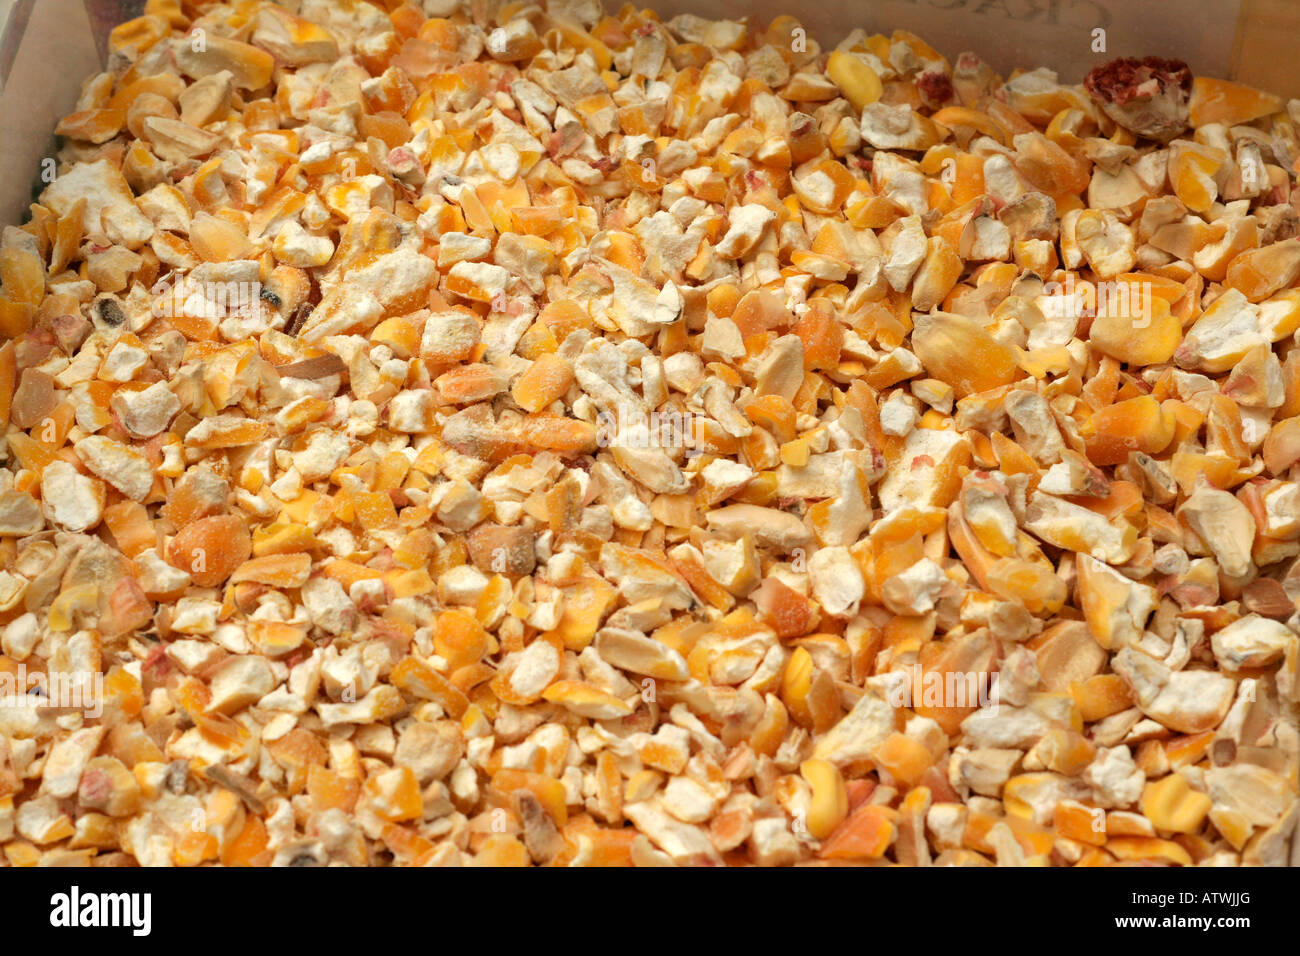 Coarsely cracked yellow corn (maize) for animal feed Stock